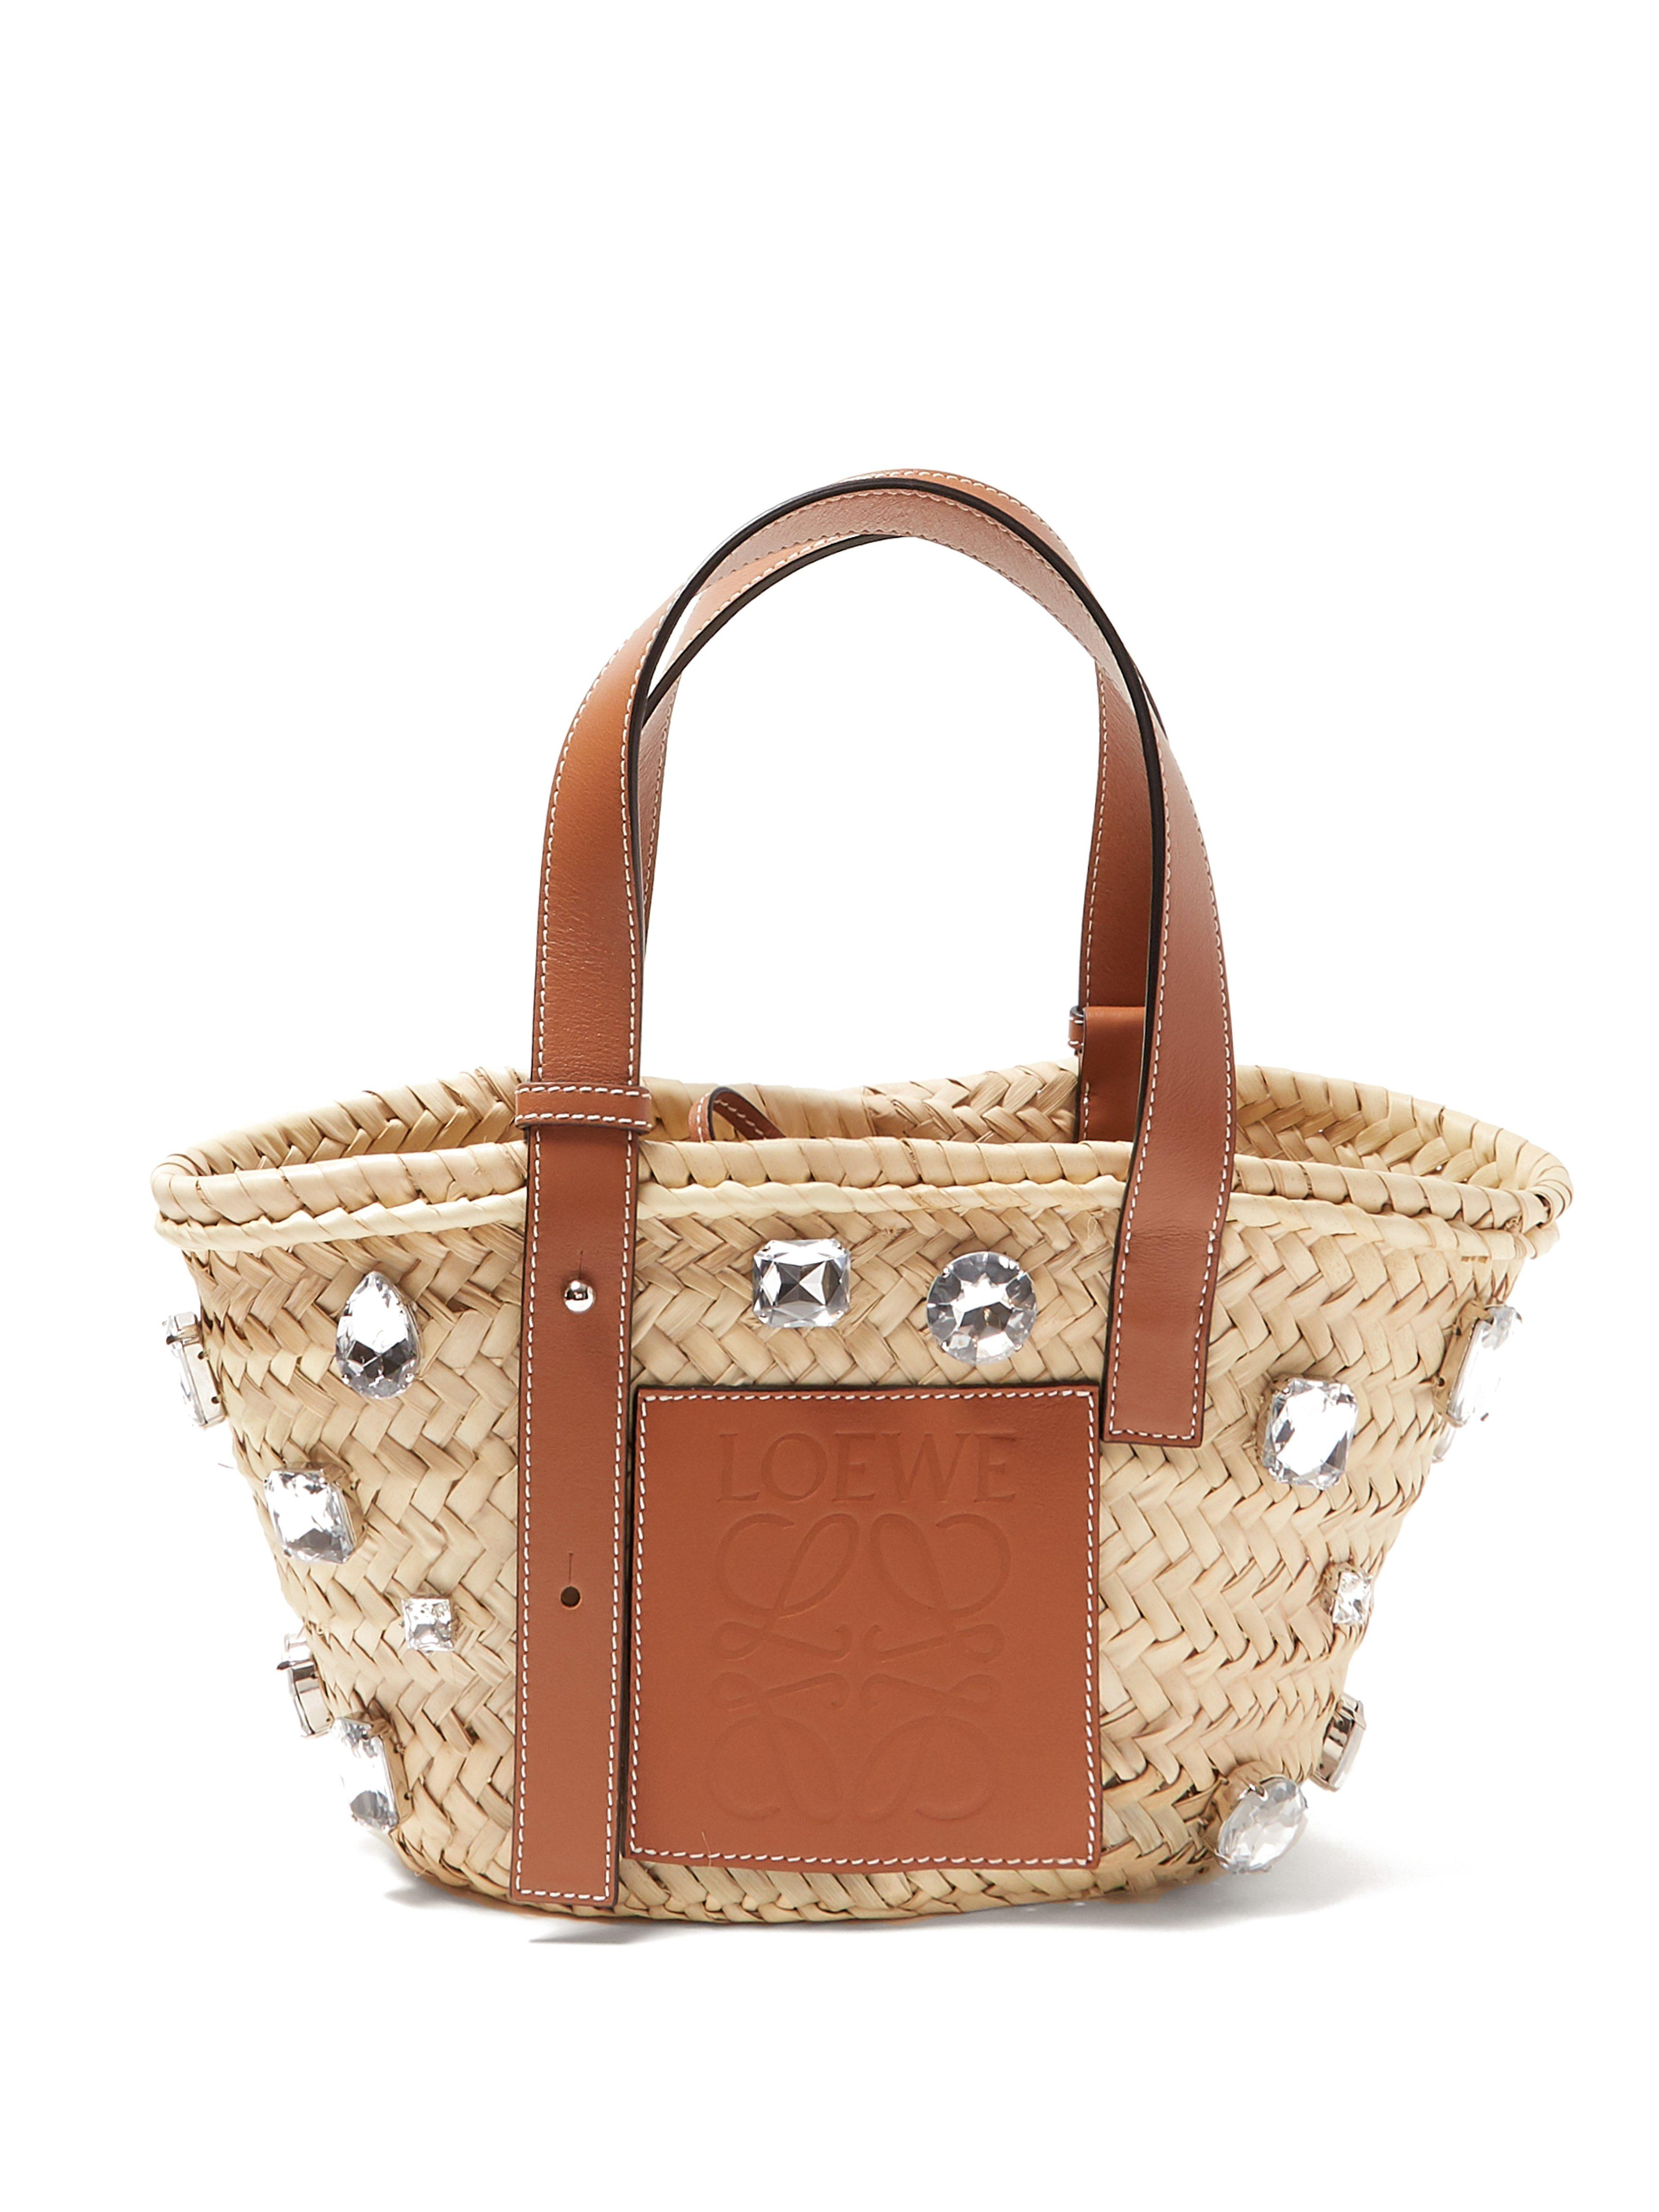 Loewe Small Crystal Embellished Woven Straw Bag in Brown - Lyst 5b8a53abda248